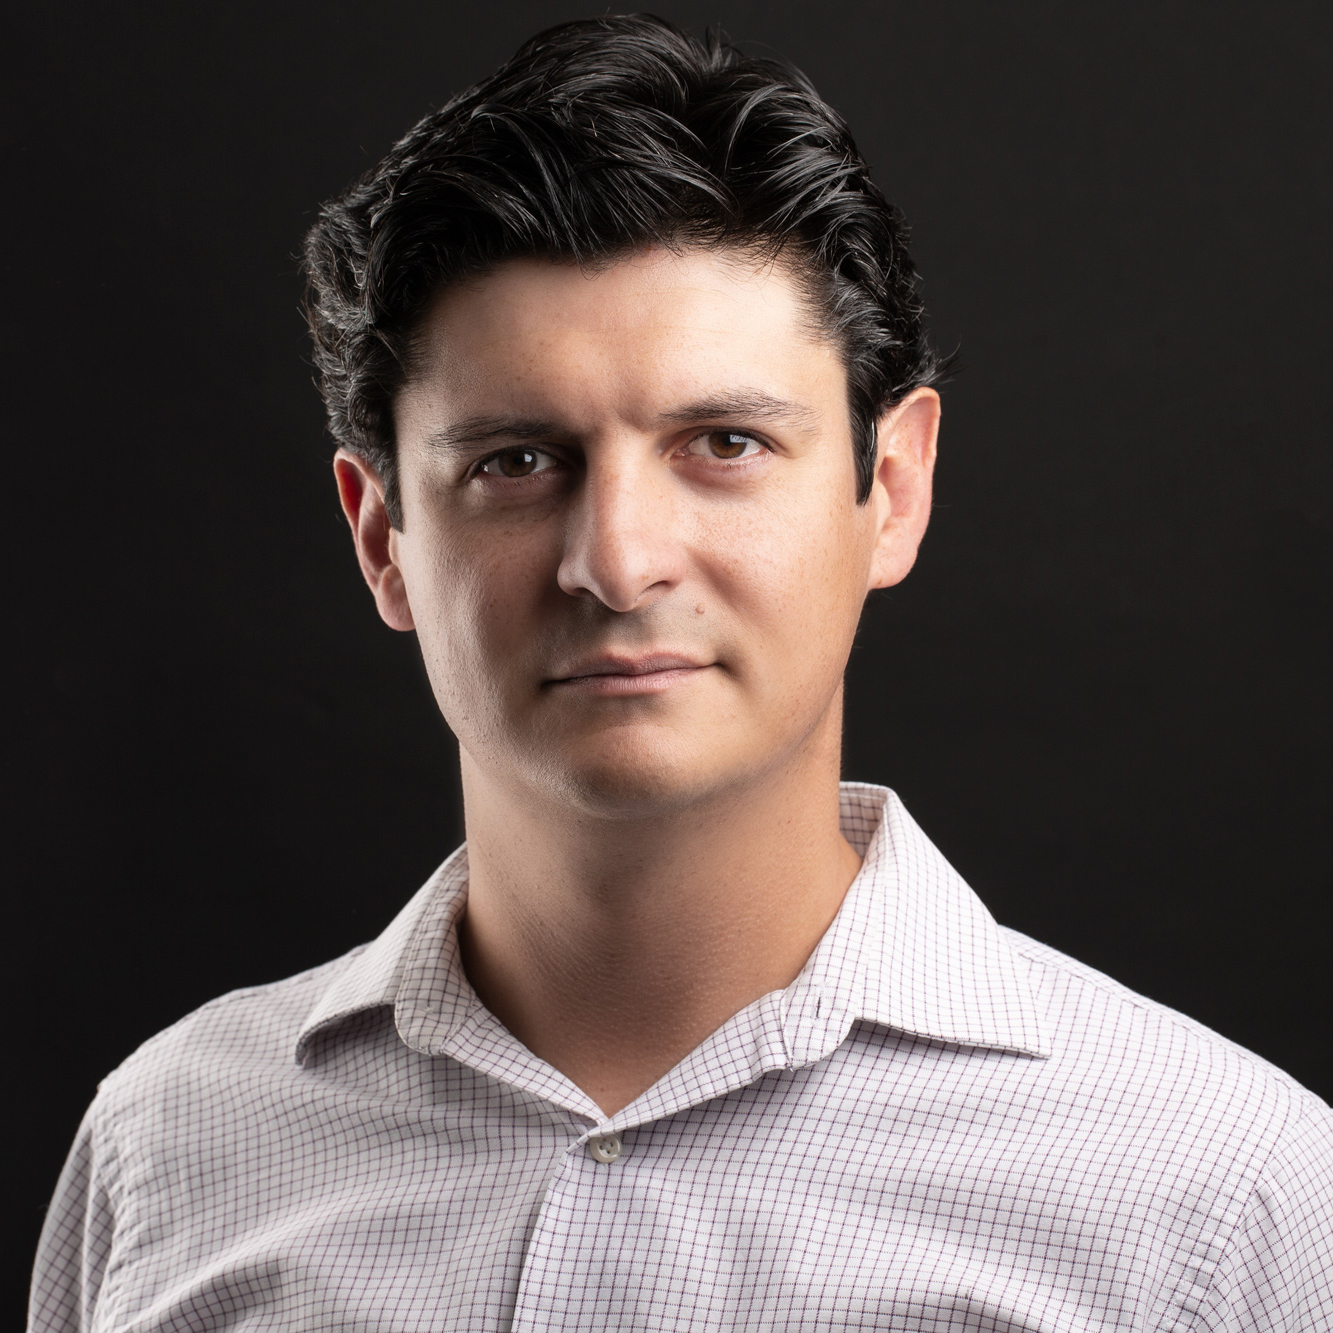 """Daniel Sanchez - Marketing Strategist   """"Marketing genius"""" is no exaggeration when describing Daniel; he absorbs knowledge like a sponge, and he can comment on just about any subject---especially when it comes to marketing!"""